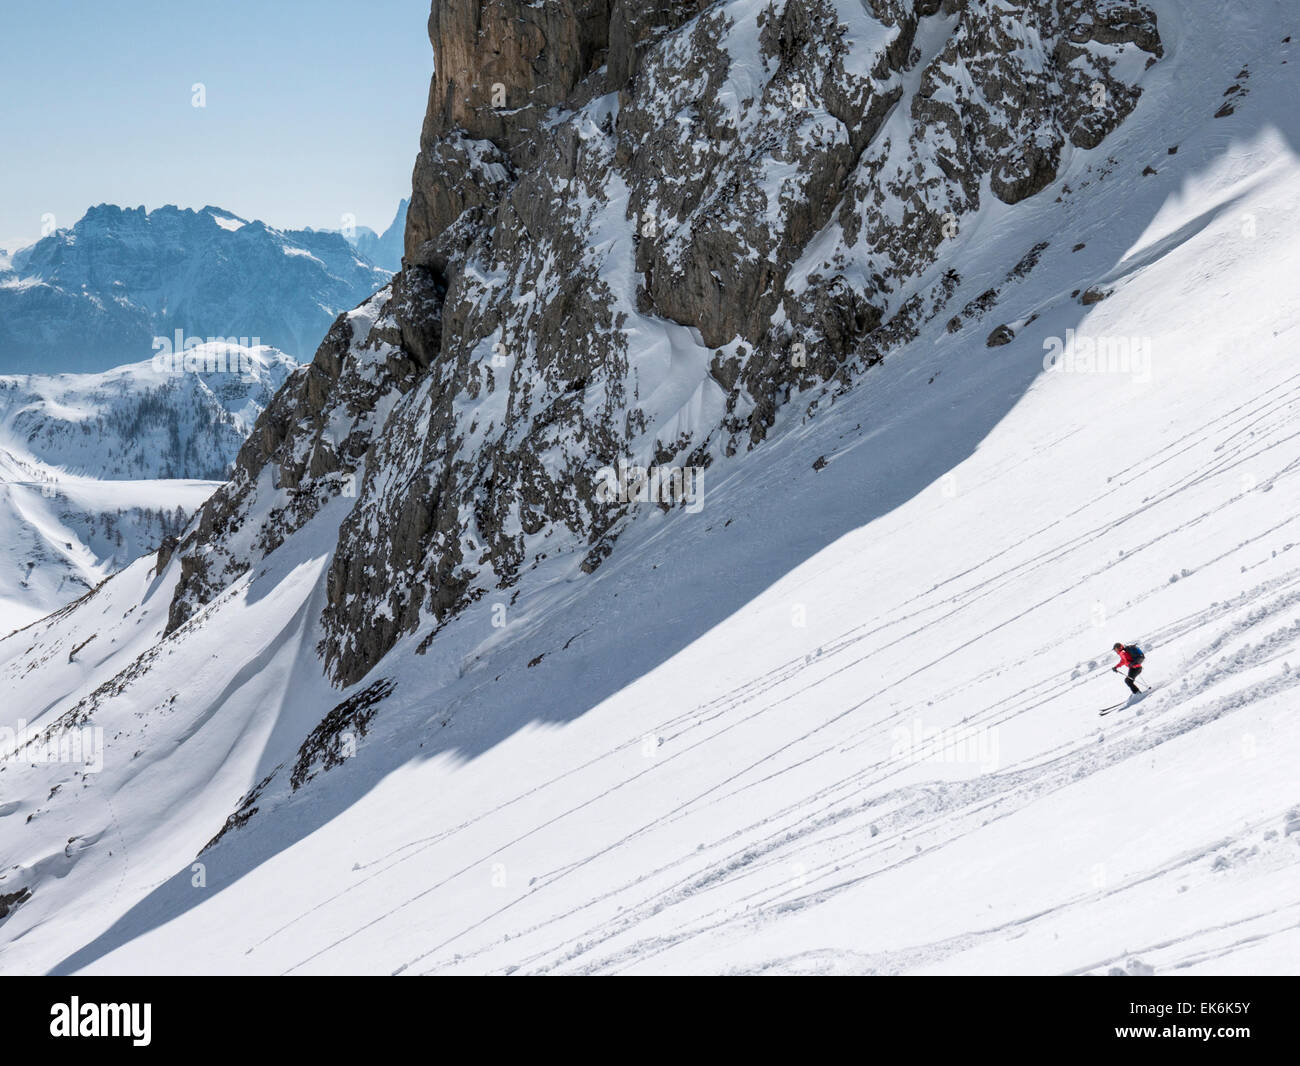 Backcountry skiers near the Rifugio Fuciade, Pale di San Martino, Dolomite Mountains, Alps, Italy - Stock Image